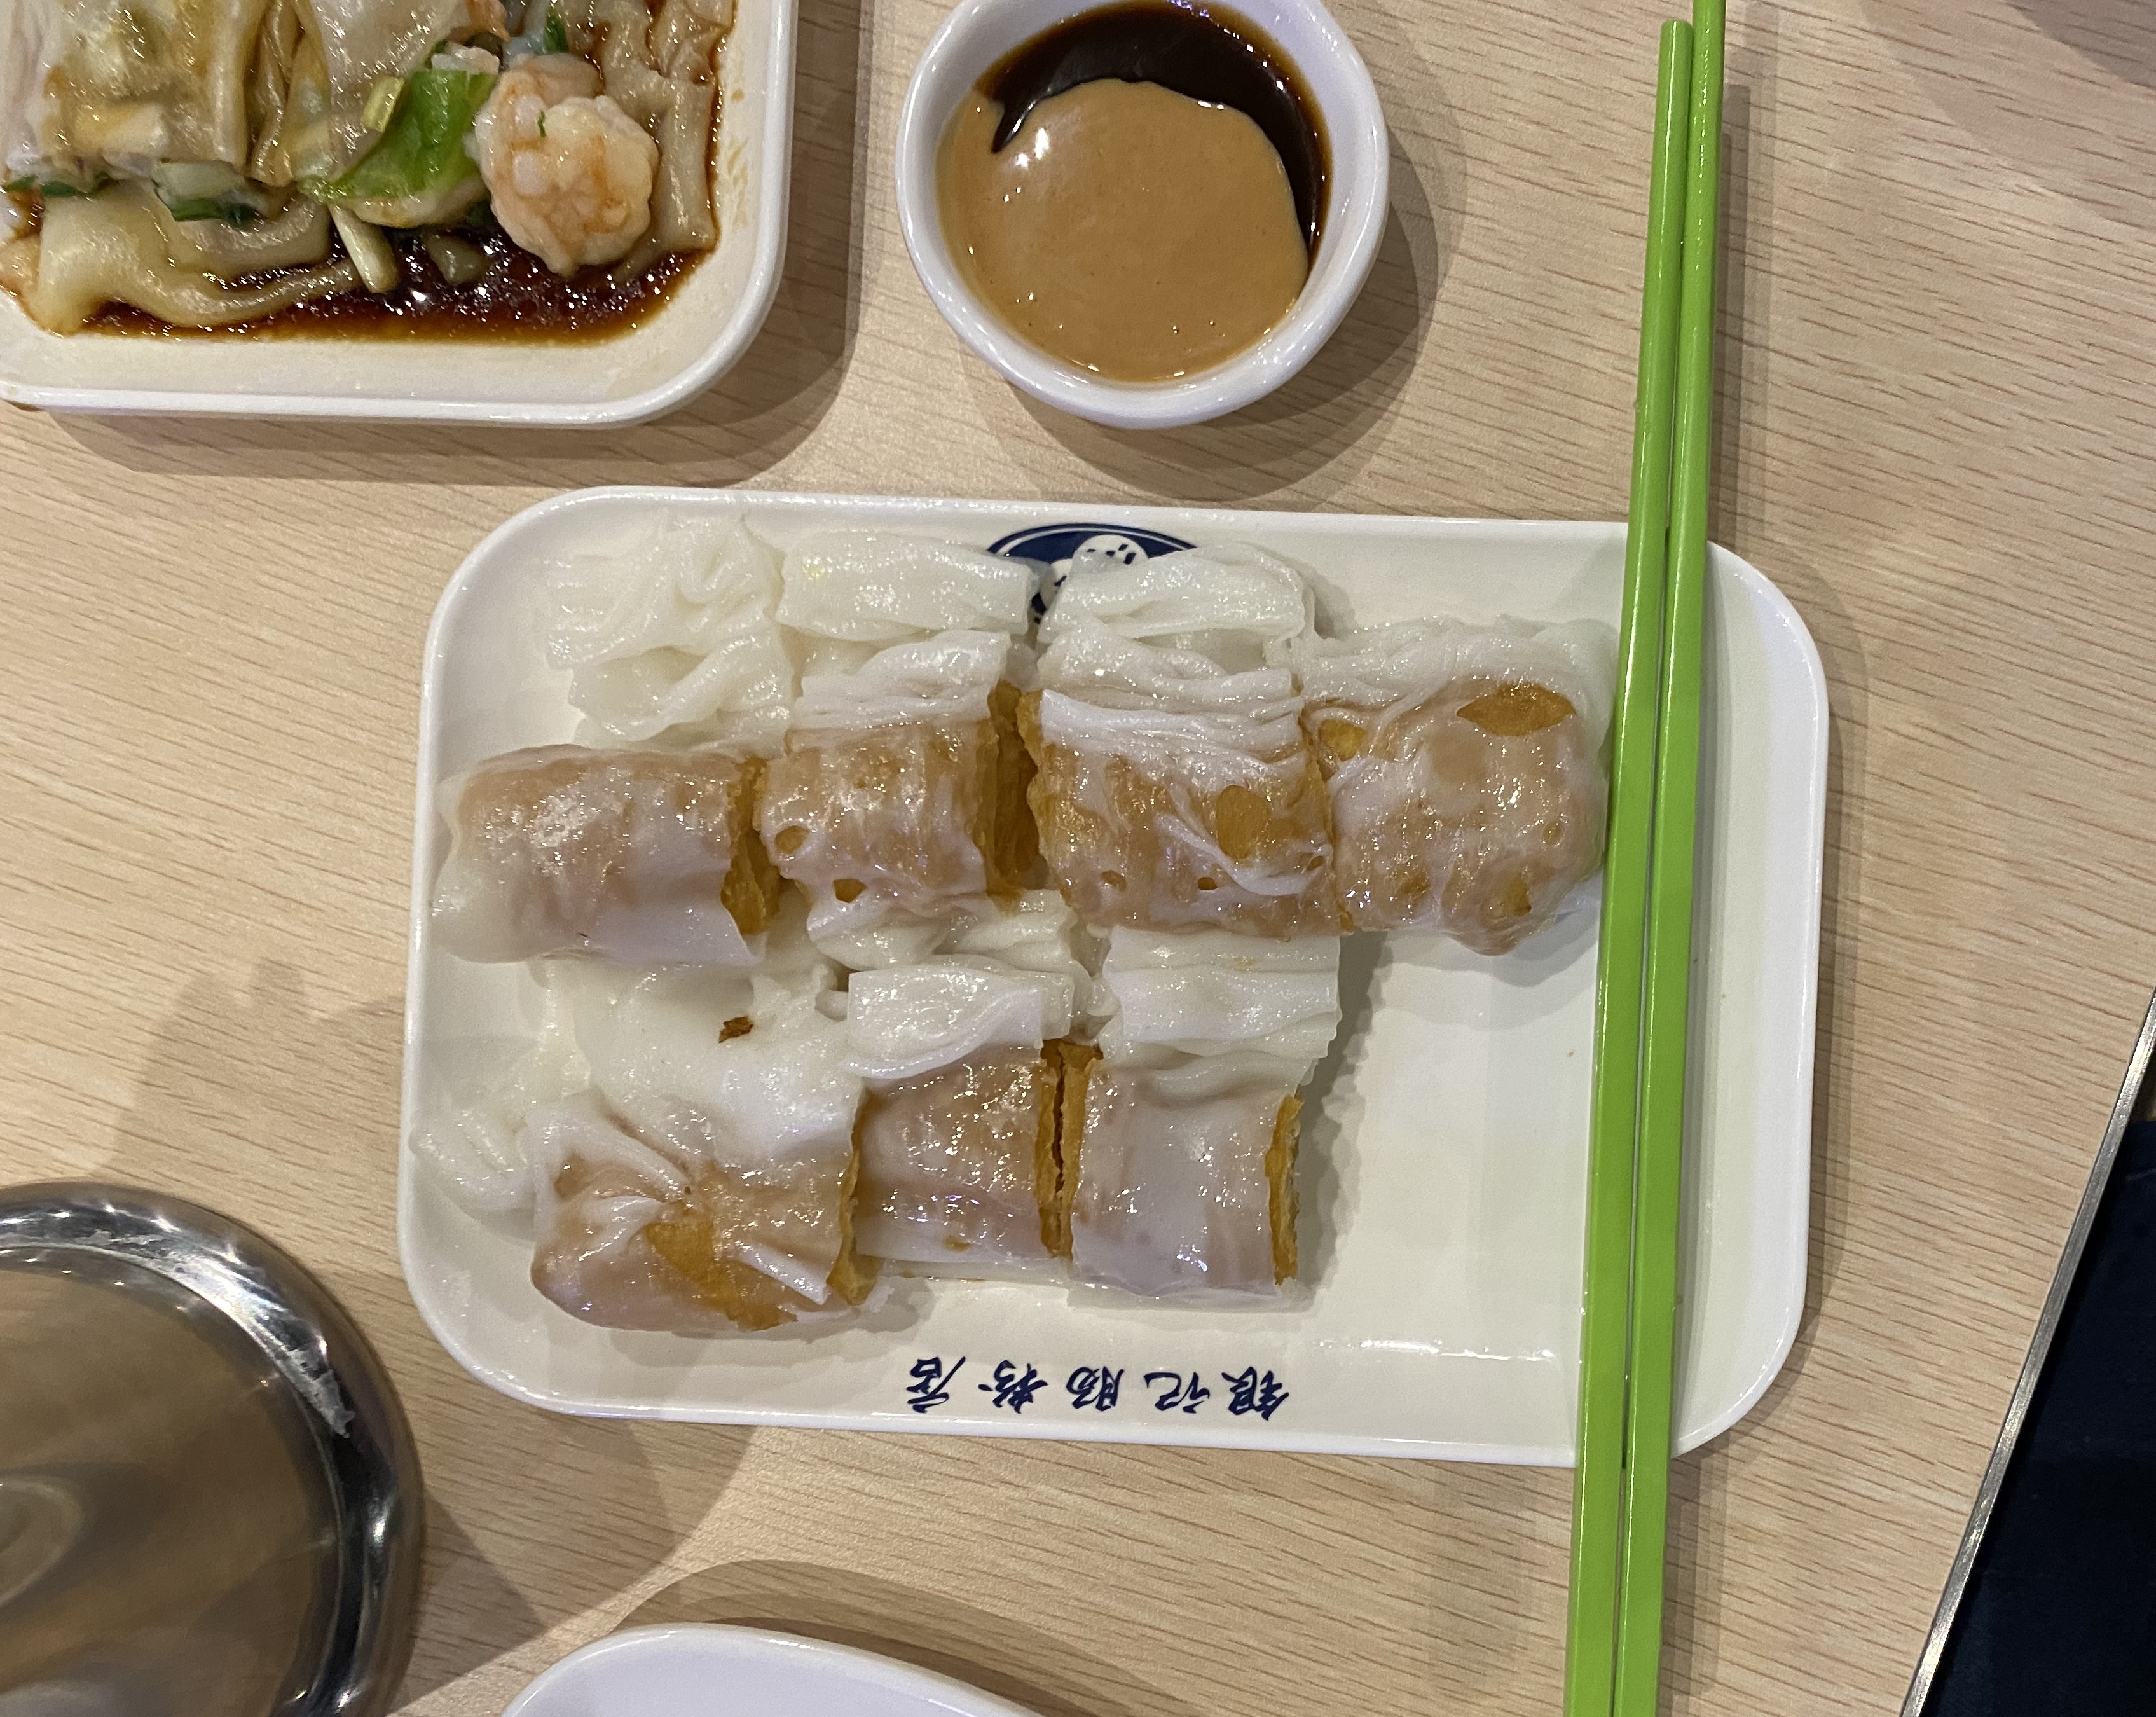 The youtiao cruller rice roll at Yin Ji Chang Fen sits on a white plate, adjacent a shrimp rice roll.